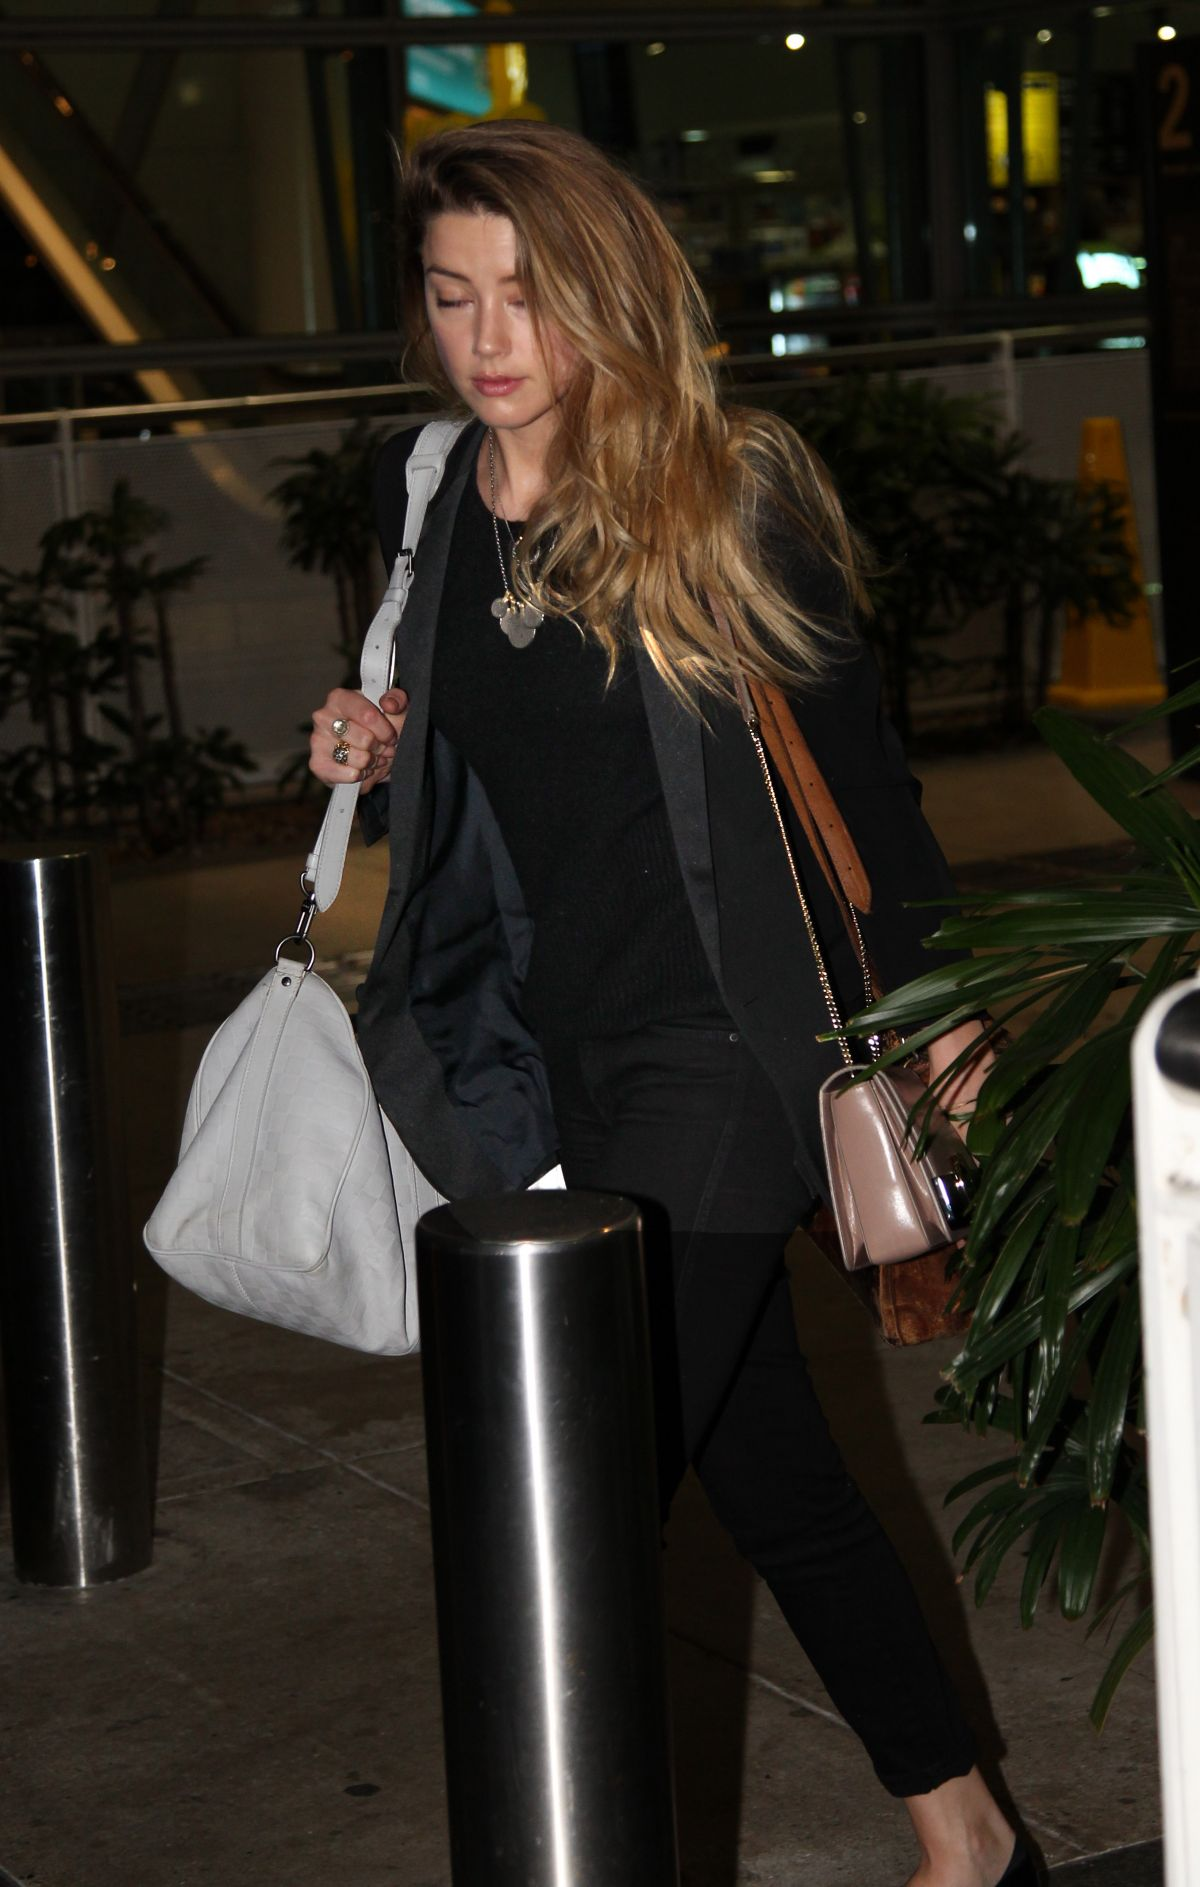 AMBERHEARD Arrives at Airport in Brisbane 07/09/2015